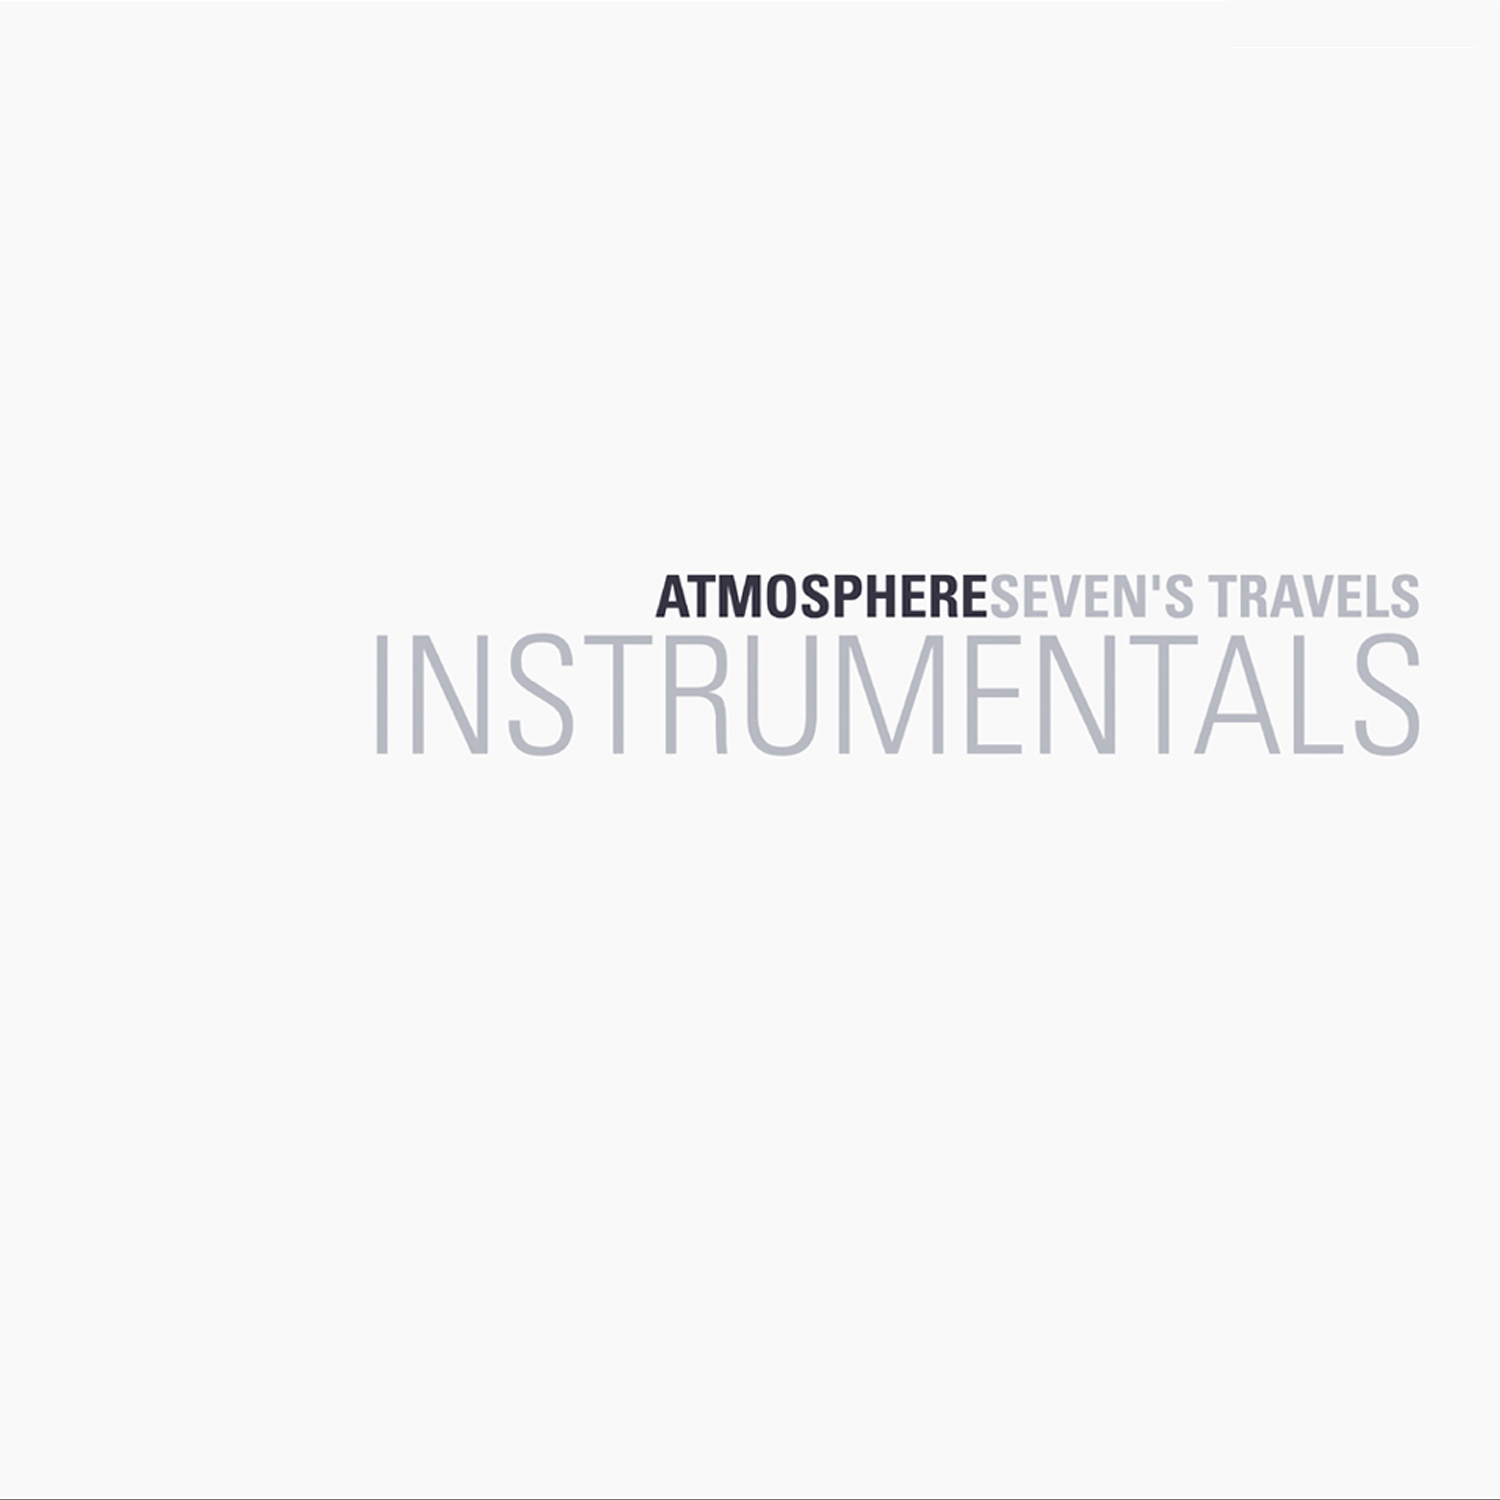 Atmosphere Sevens Travels Instrumentals